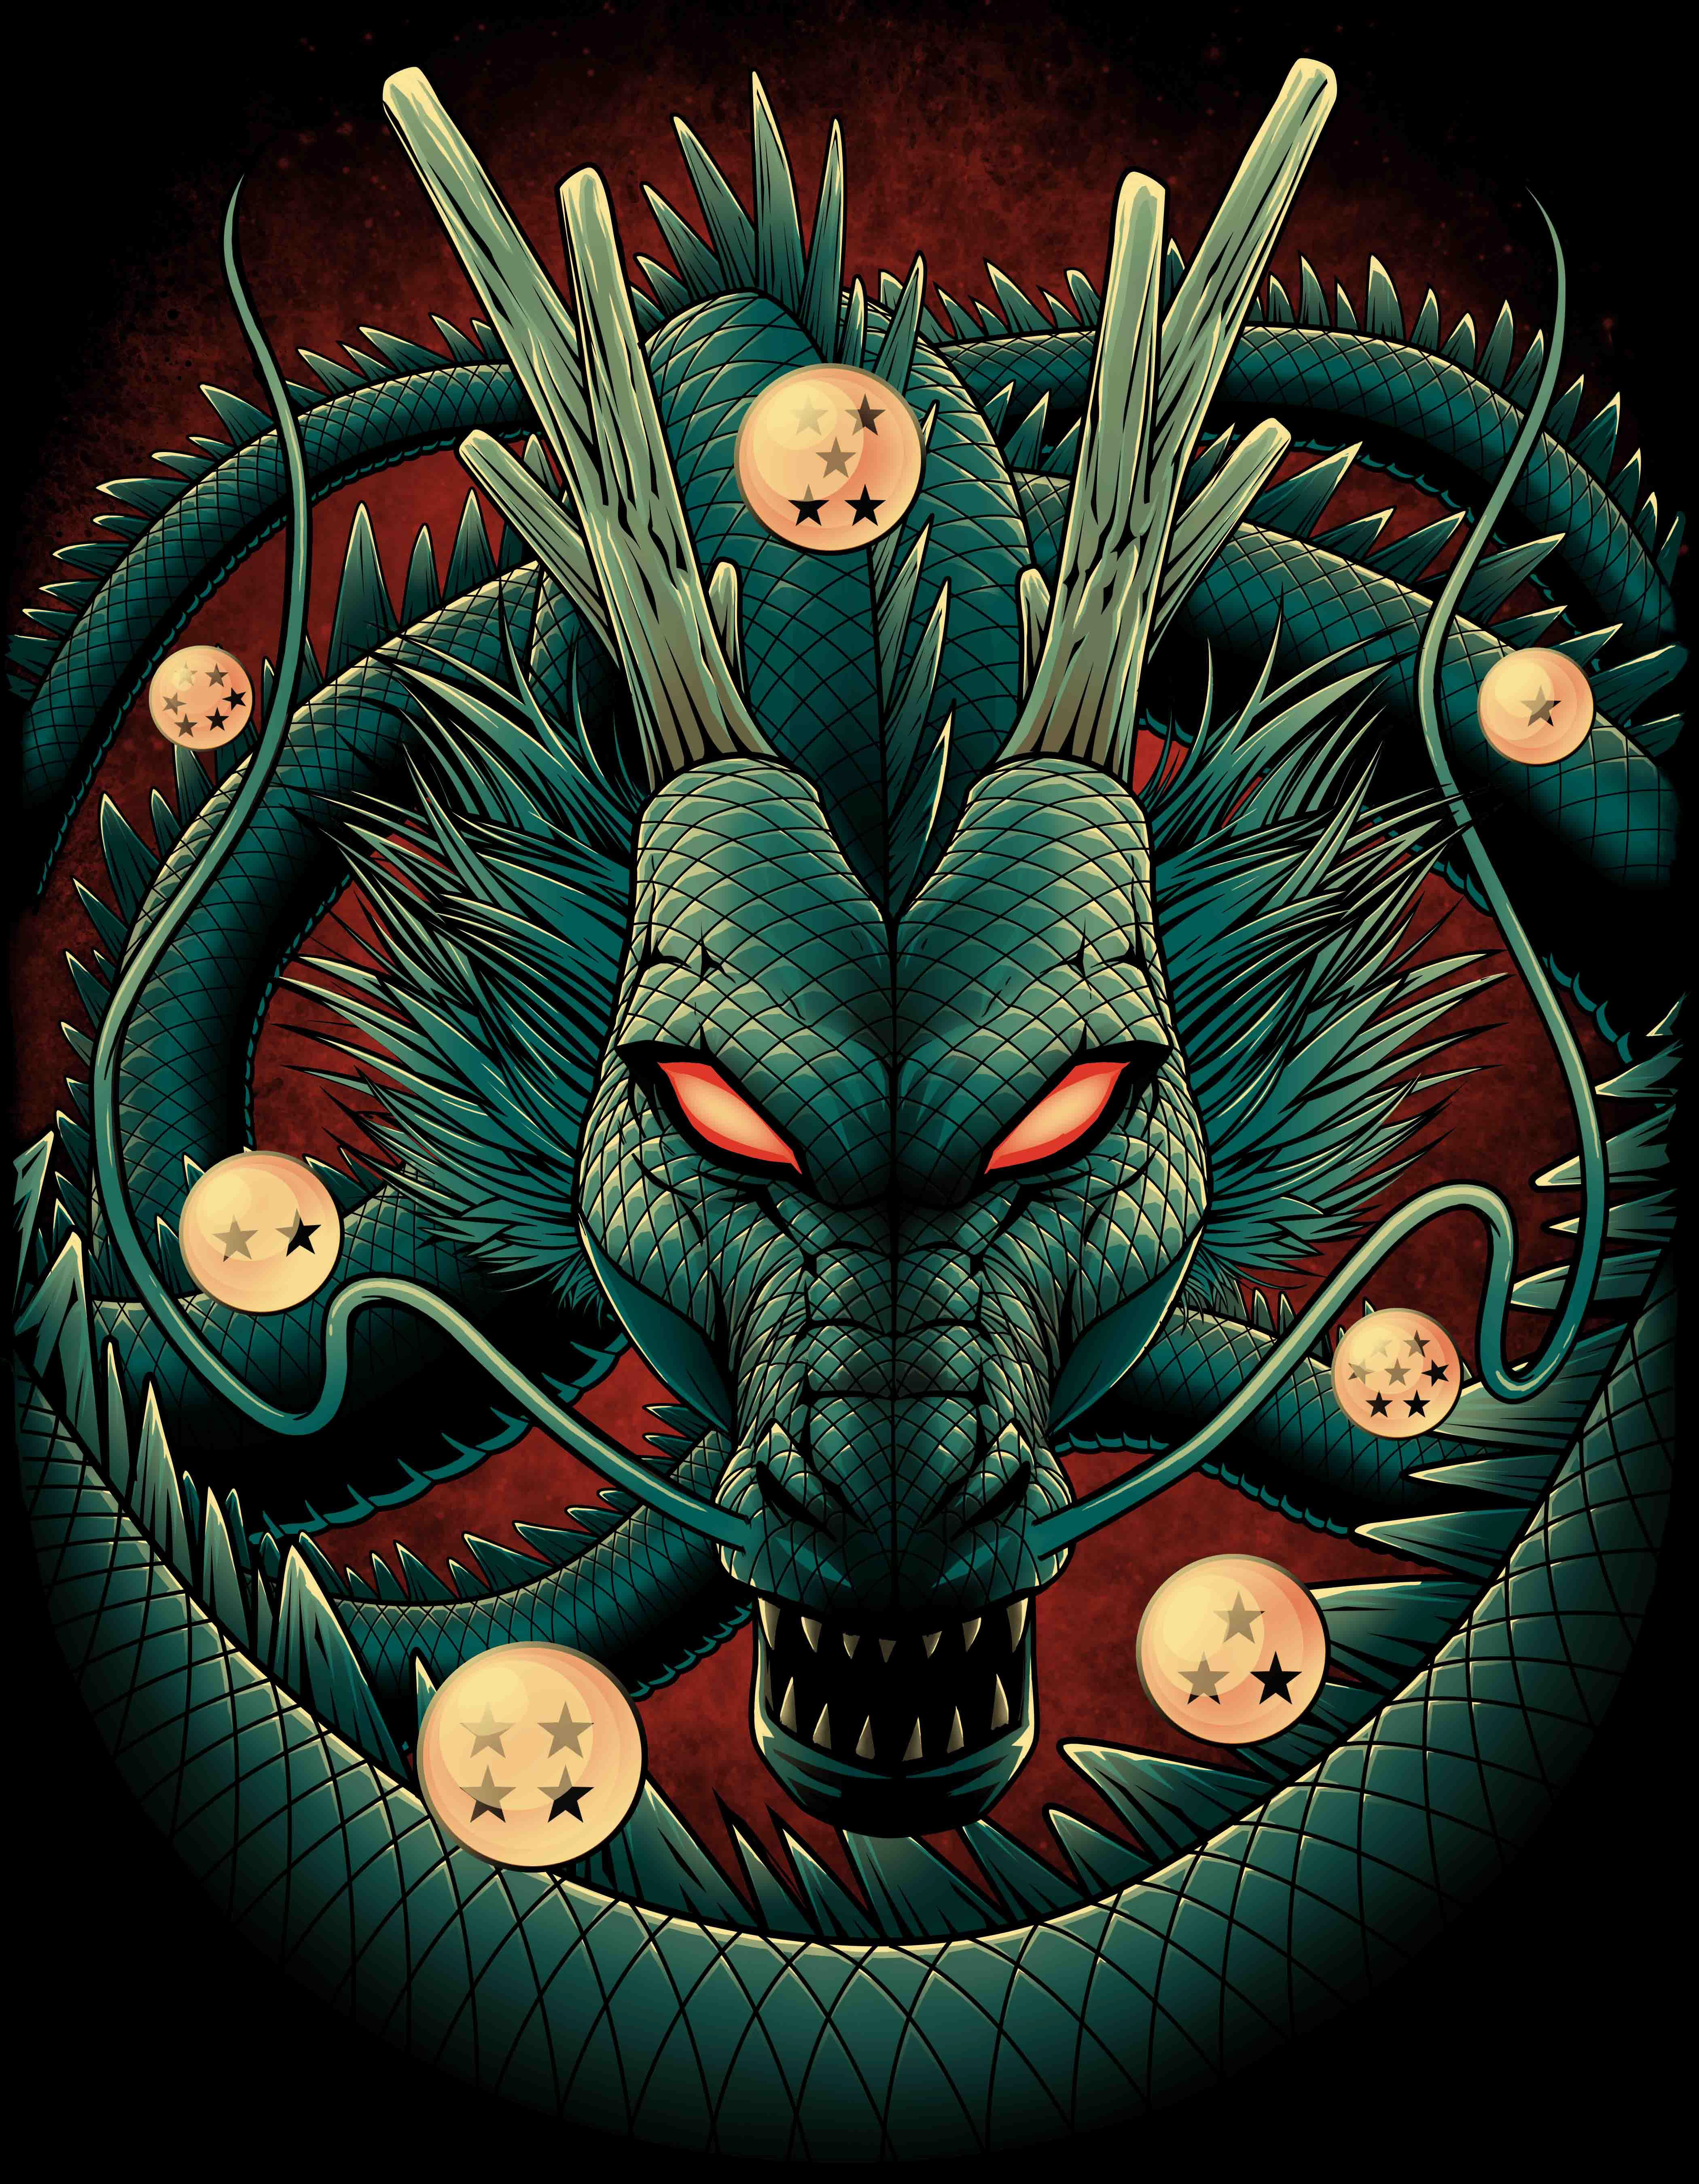 Shenron Wallpaper : shenron, wallpaper, Shenron, Dragon, Wallpapers,, Anime, Super,